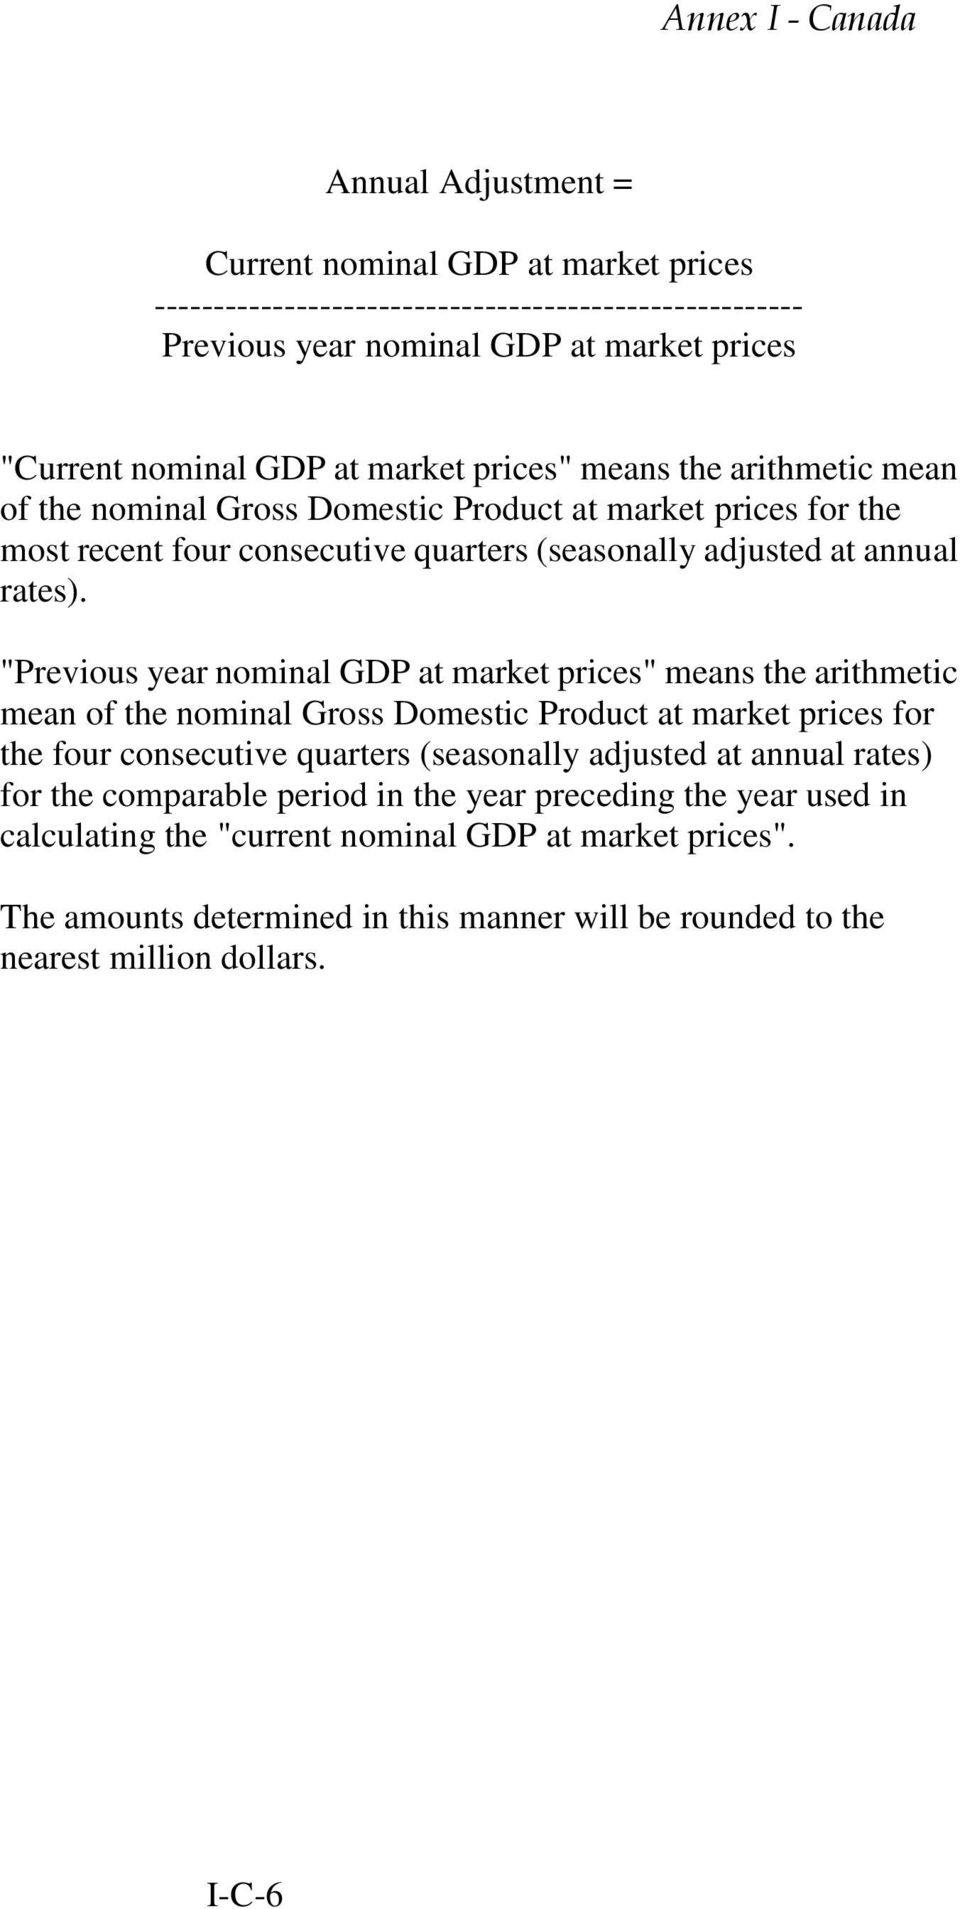 """Previous year nominal GDP at market prices"" means the arithmetic mean of the nominal Gross Domestic Product at market prices for the four consecutive quarters (seasonally adjusted at annual"